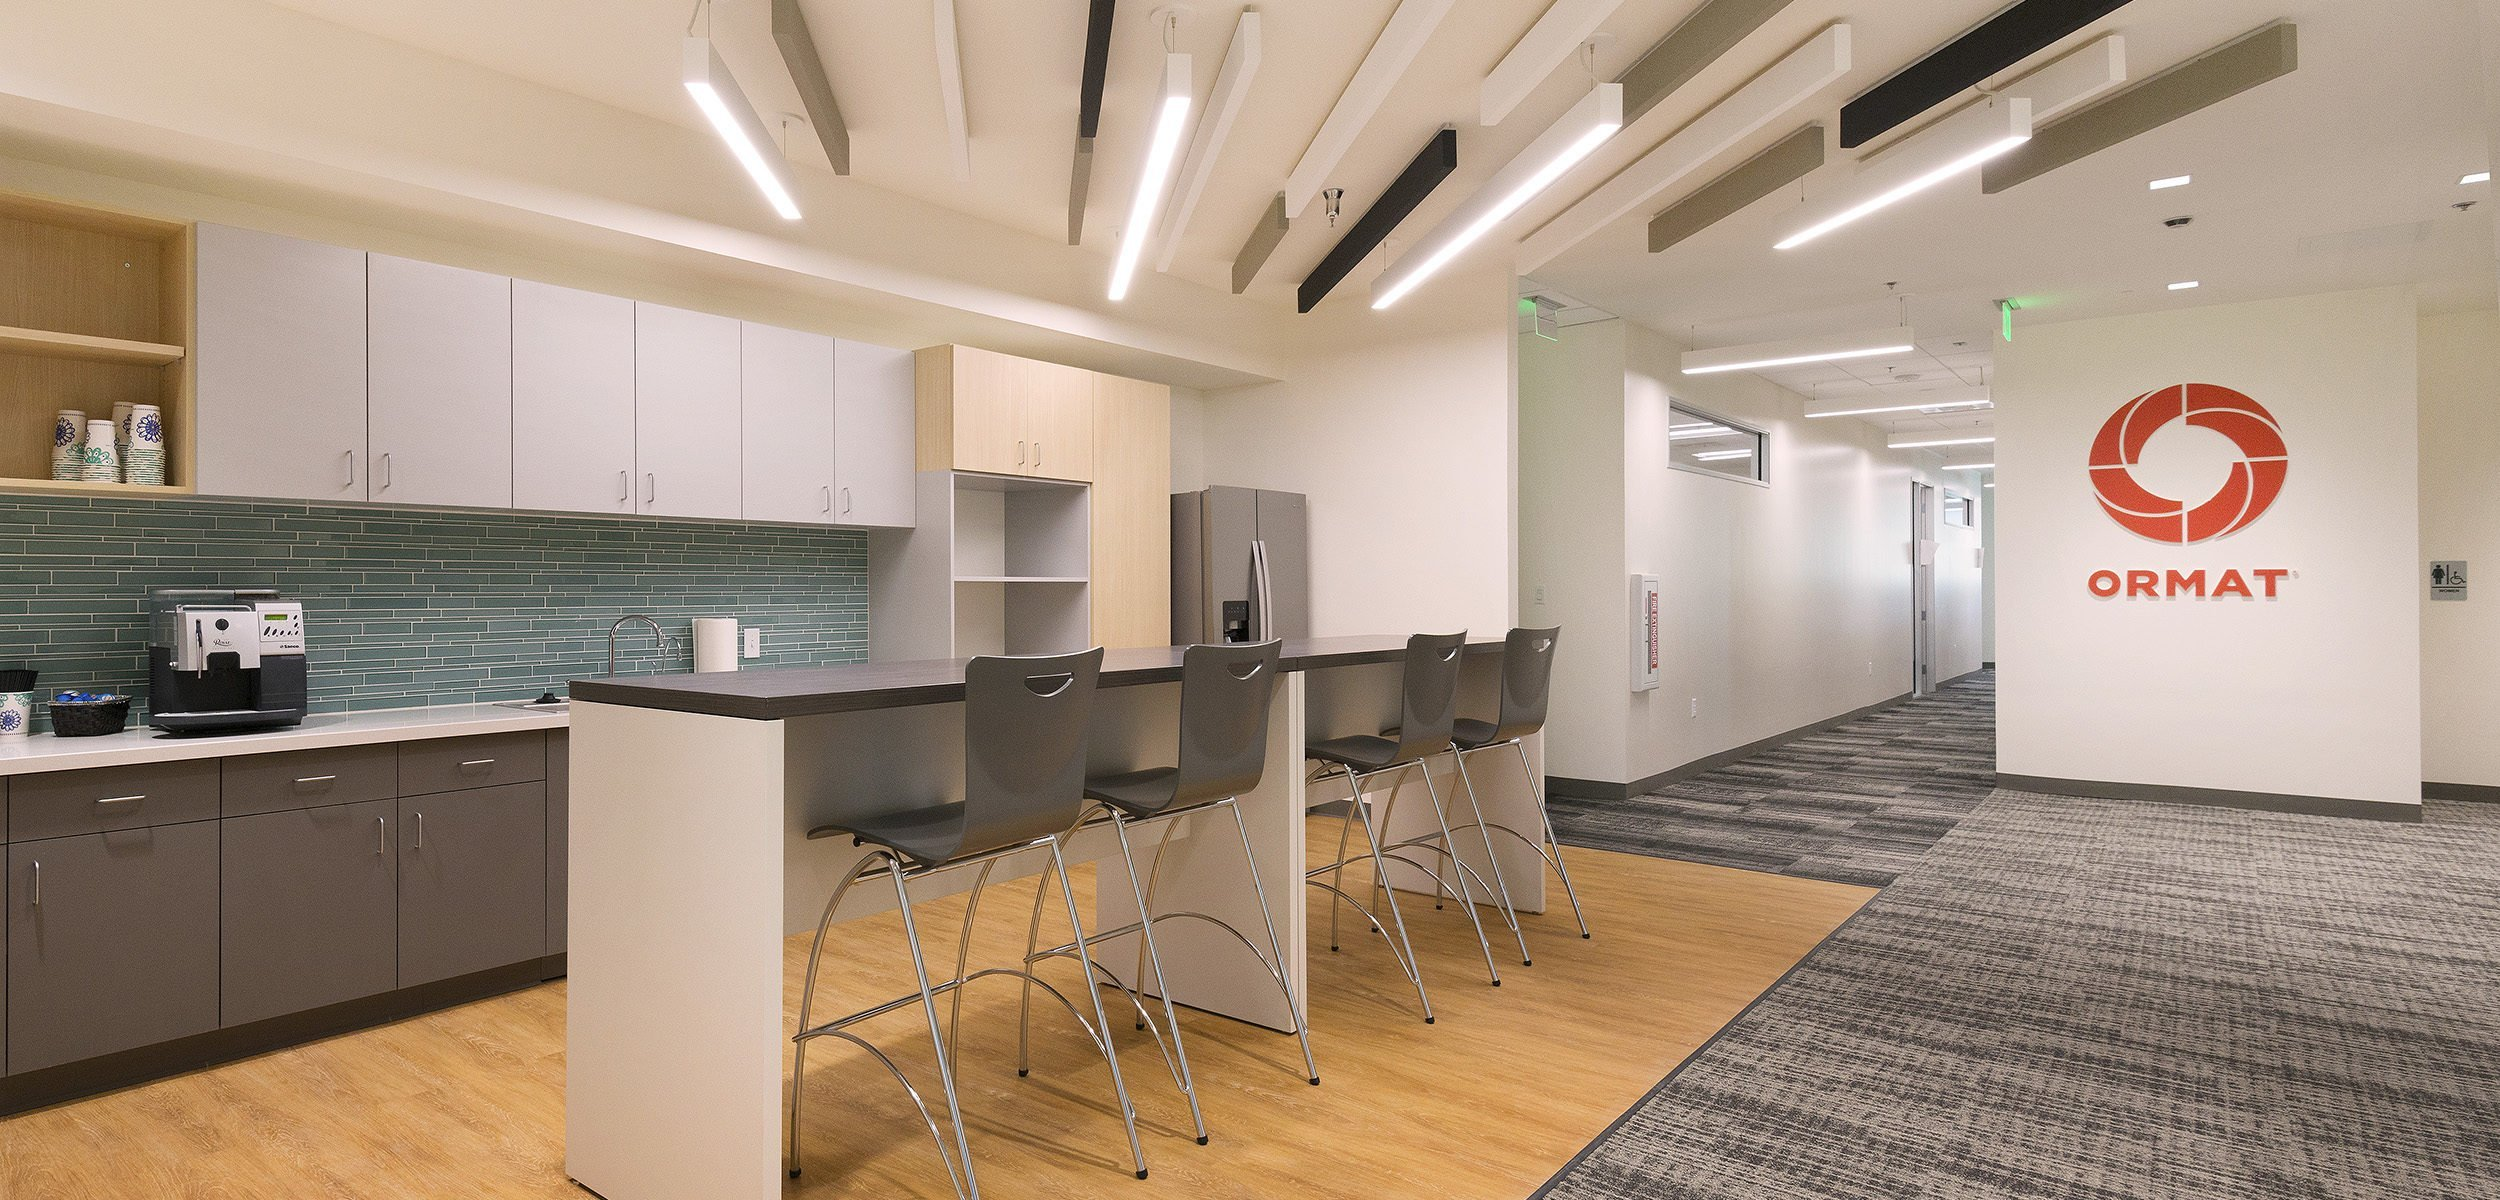 Ormat's headquarters in Reno includes office areas and conference rooms